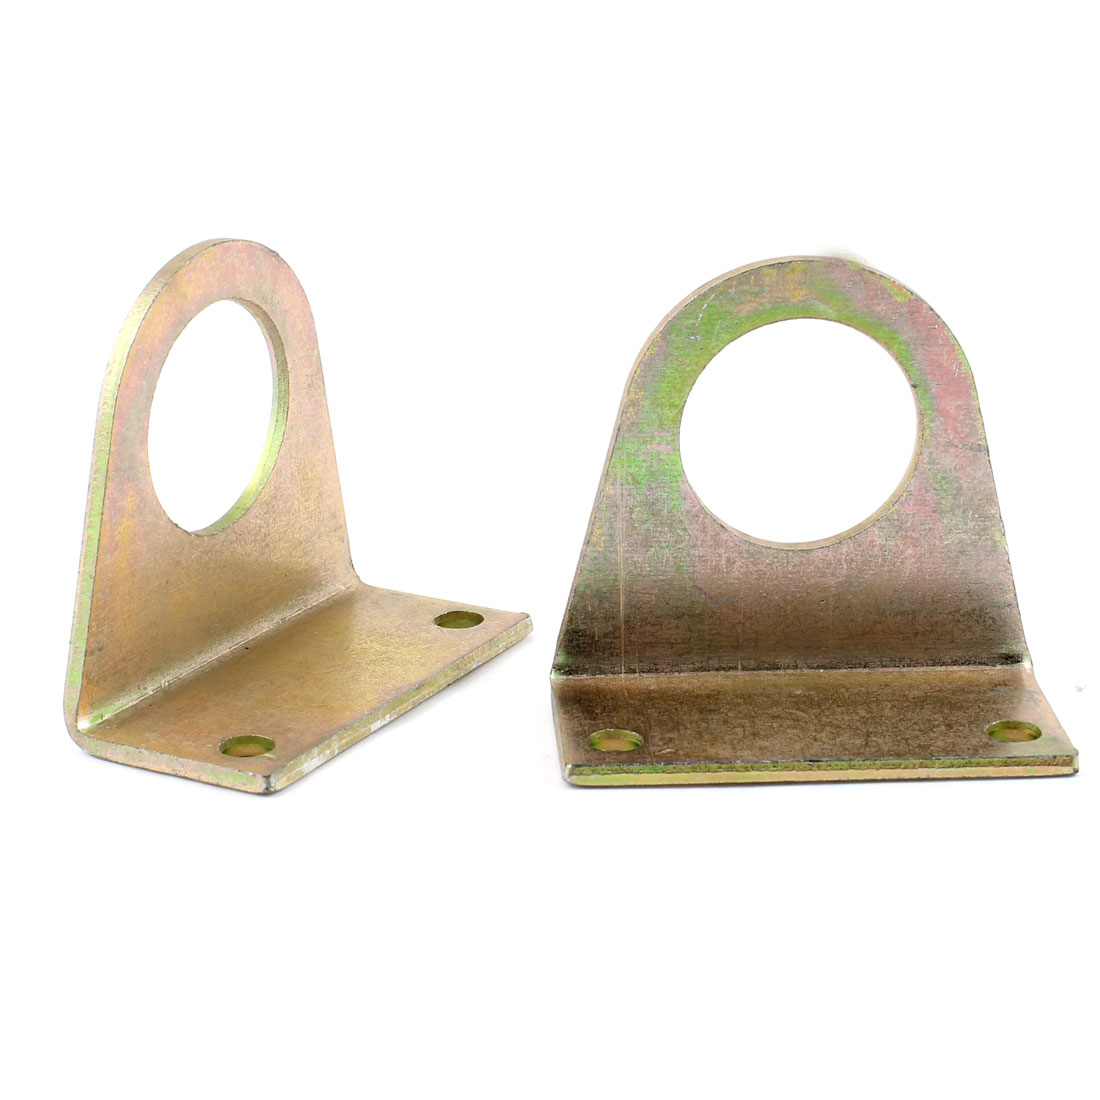 "1.3"" Dia Hole 2.4"" x 1.1"" x 2.2"" Right Angle Brass Tone Corner Bracket 2 Pcs"